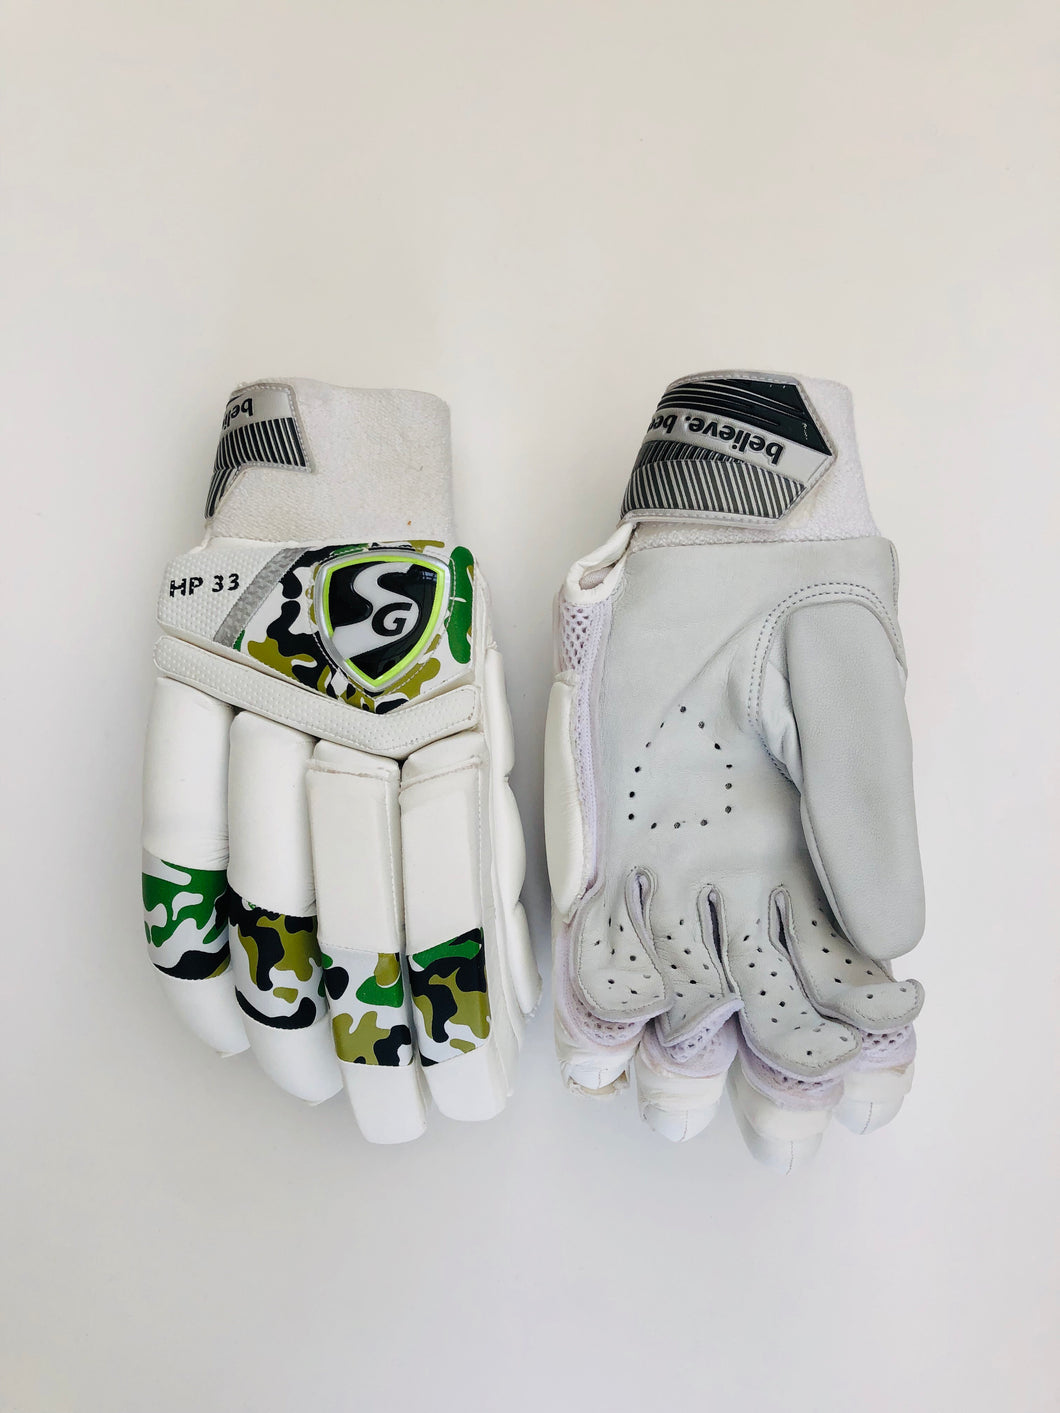 SG HP 33 Cricket Batting Gloves | As used by Hardik Pandya - DKP Cricket Online